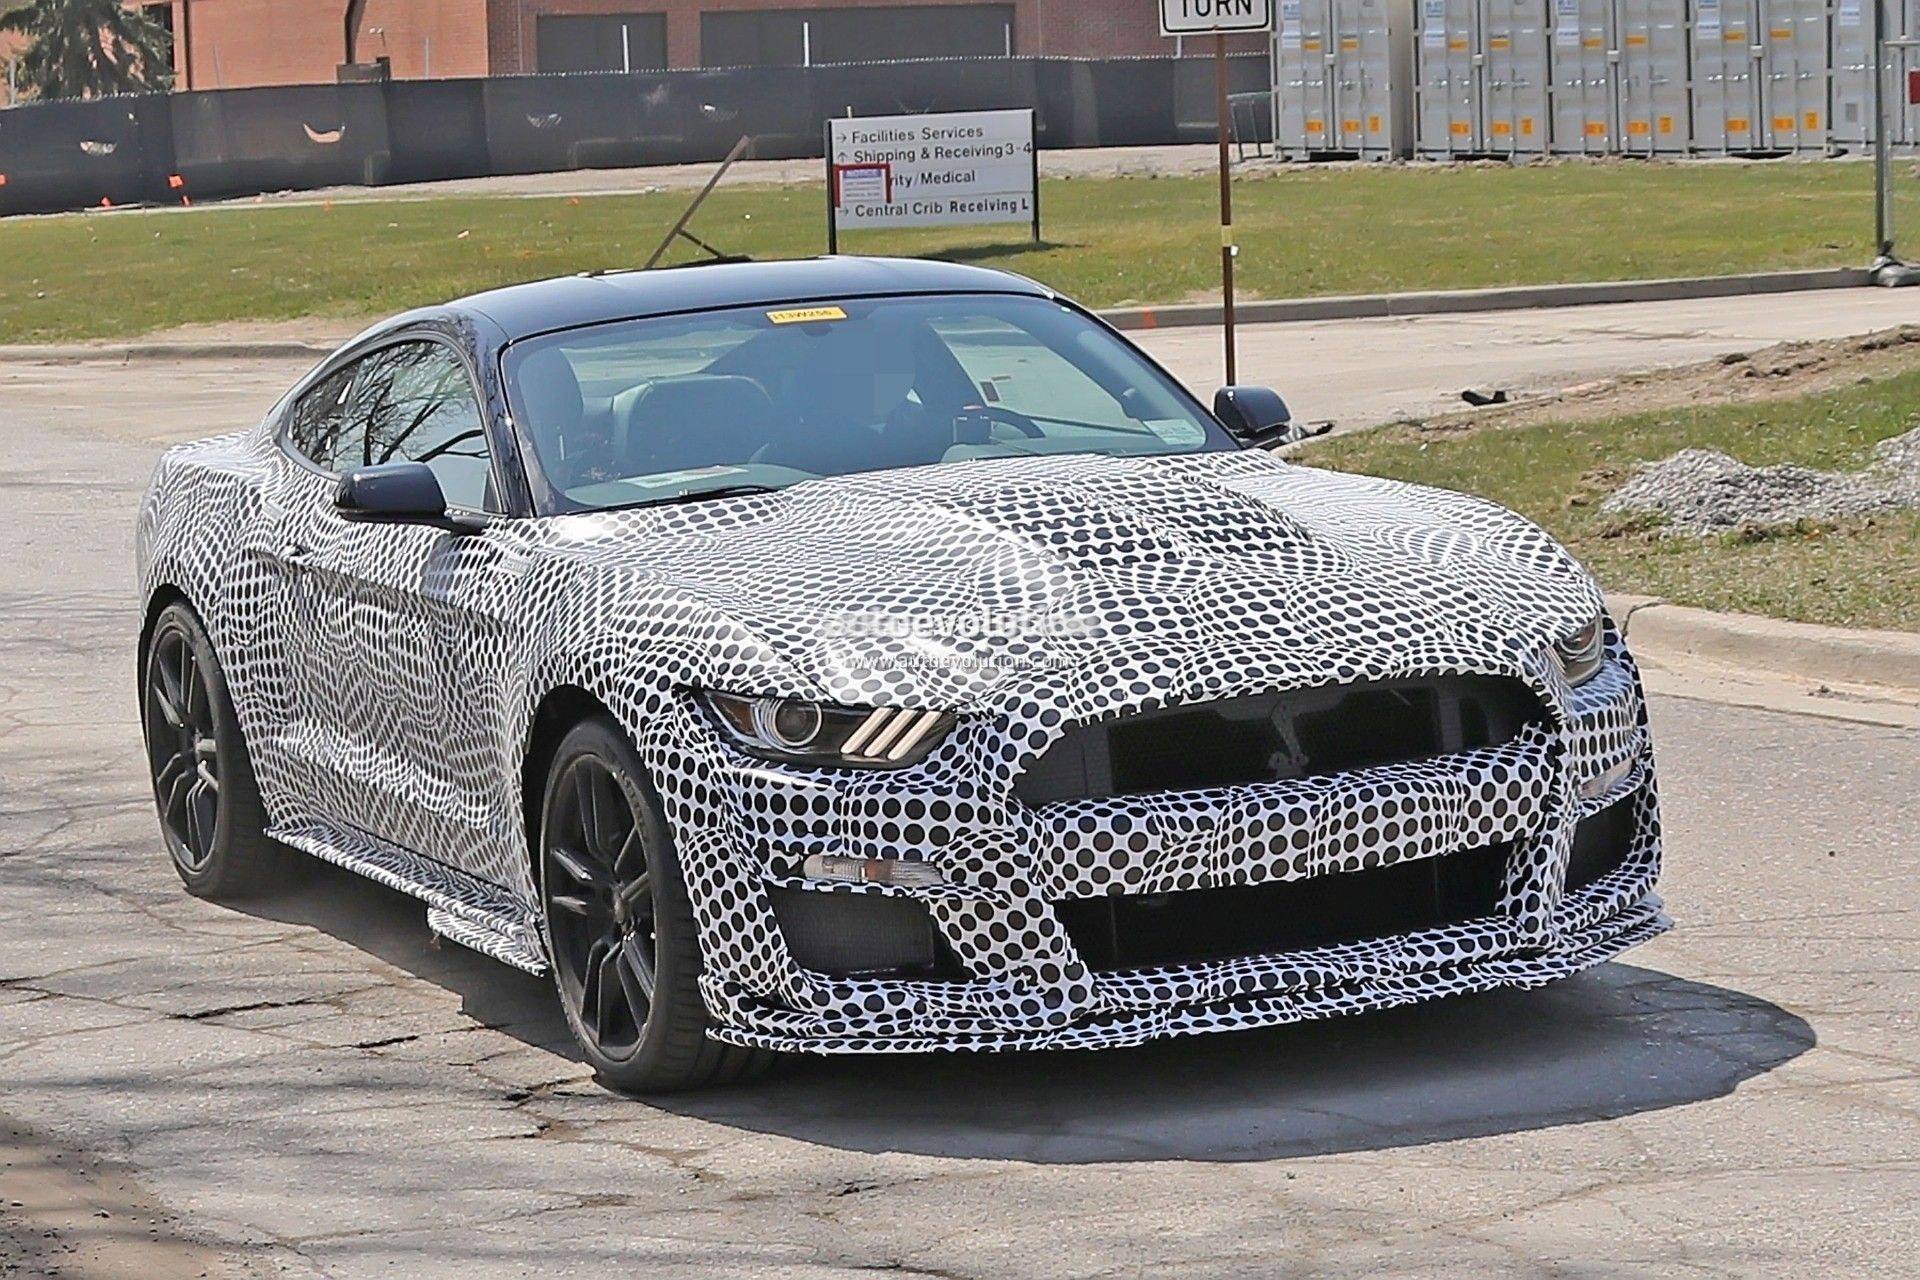 New 2020 Mustang Gt500 Redesign With Images Ford Shelby Shelby Gt500 Mustang Gt500